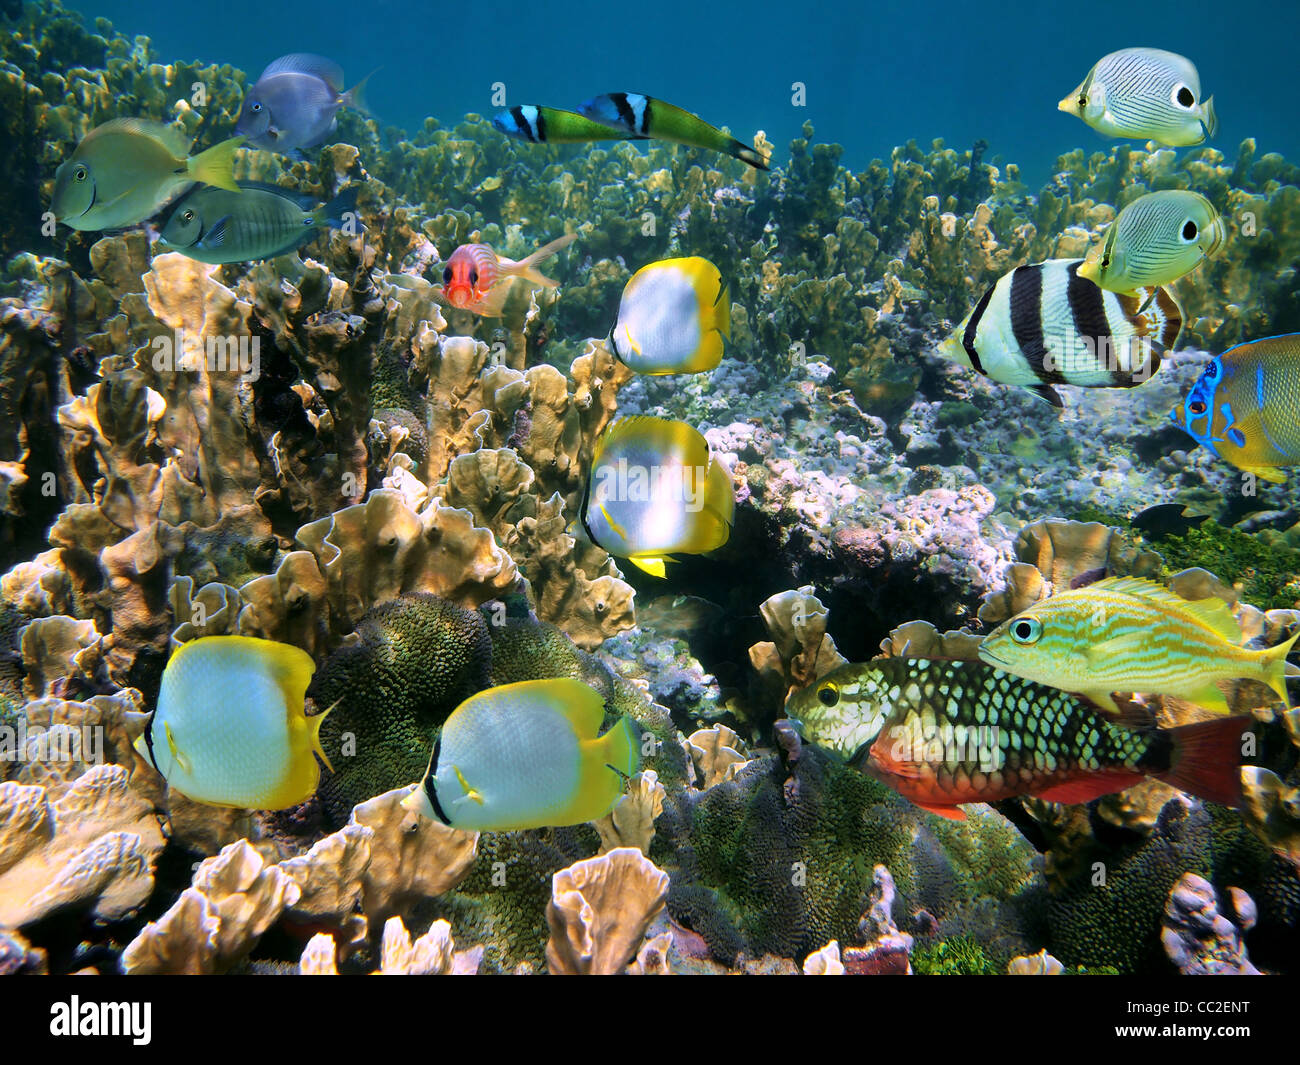 Shoal of colorful tropical fish on a coral reef of the Caribbean sea, Belize - Stock Image